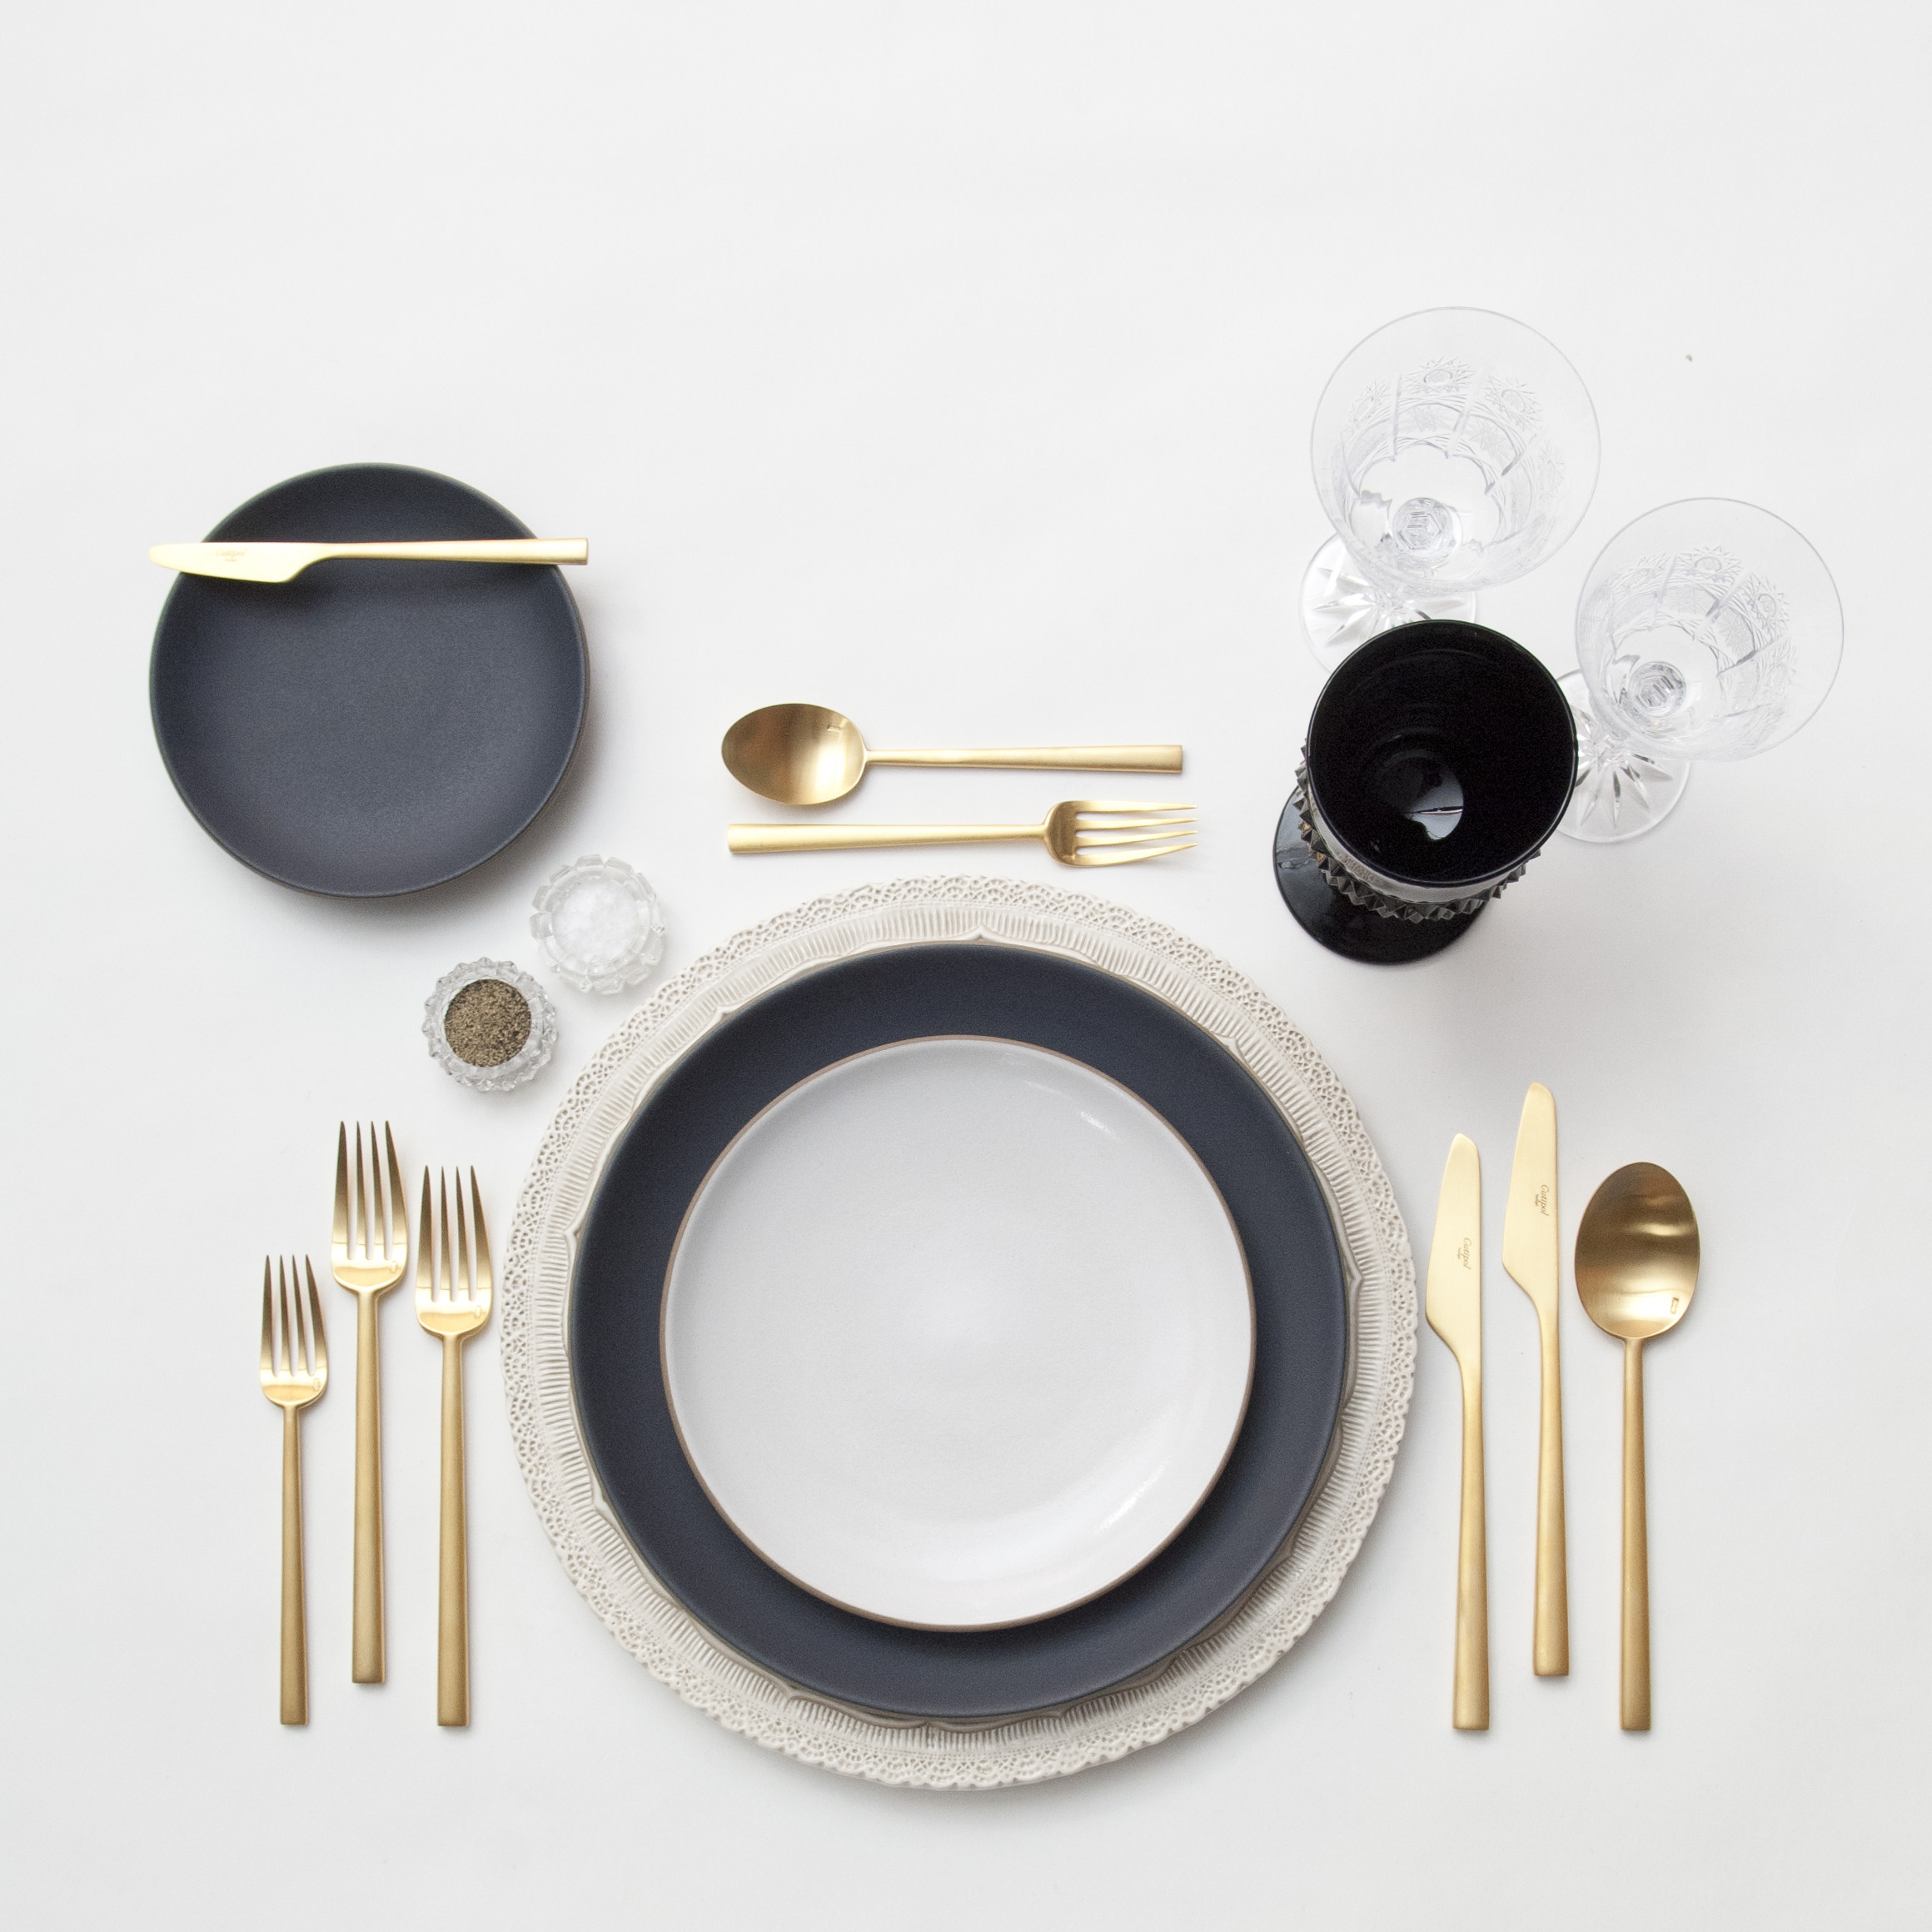 RENT: Lace Chargers in White + Heath Ceramics in Indigo/Slate/Opaque White + Rondo Flatware in Brushed 24k Gold + Czech Crystal Stemware + Vintage Black Goblets + Antique Crystal Salt Cellars   SHOP: Rondo Flatware in Brushed 24k Gold